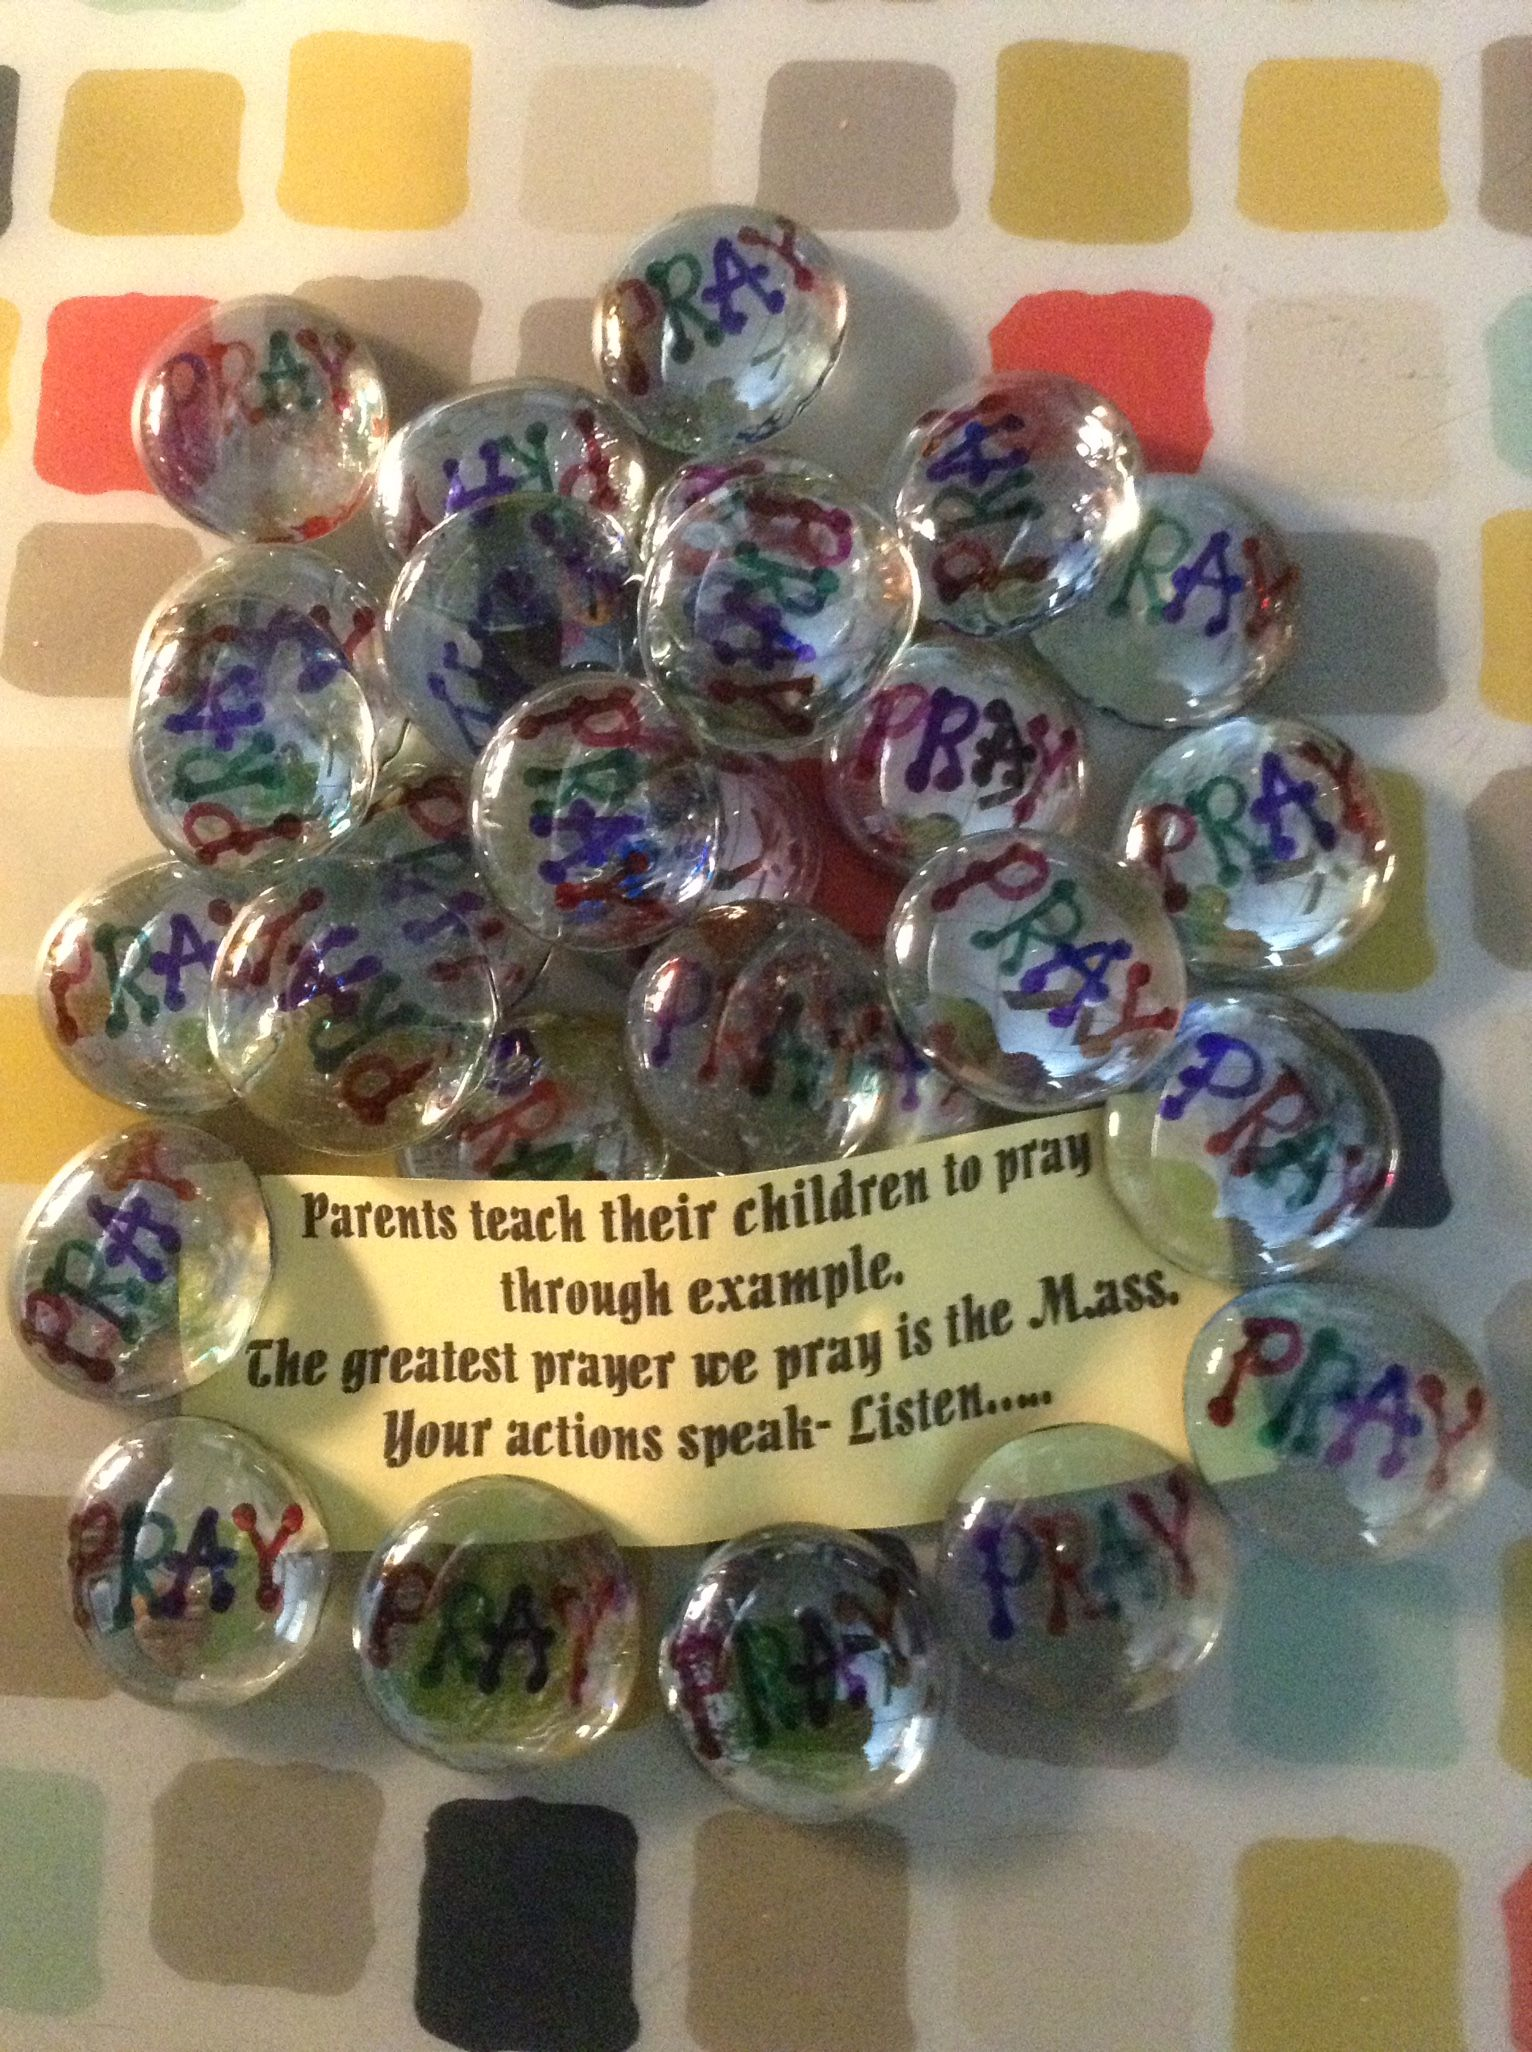 A gift for my Prep class parents to emphasize the importance of prayer. Print on glass stones from the Dollar Store.